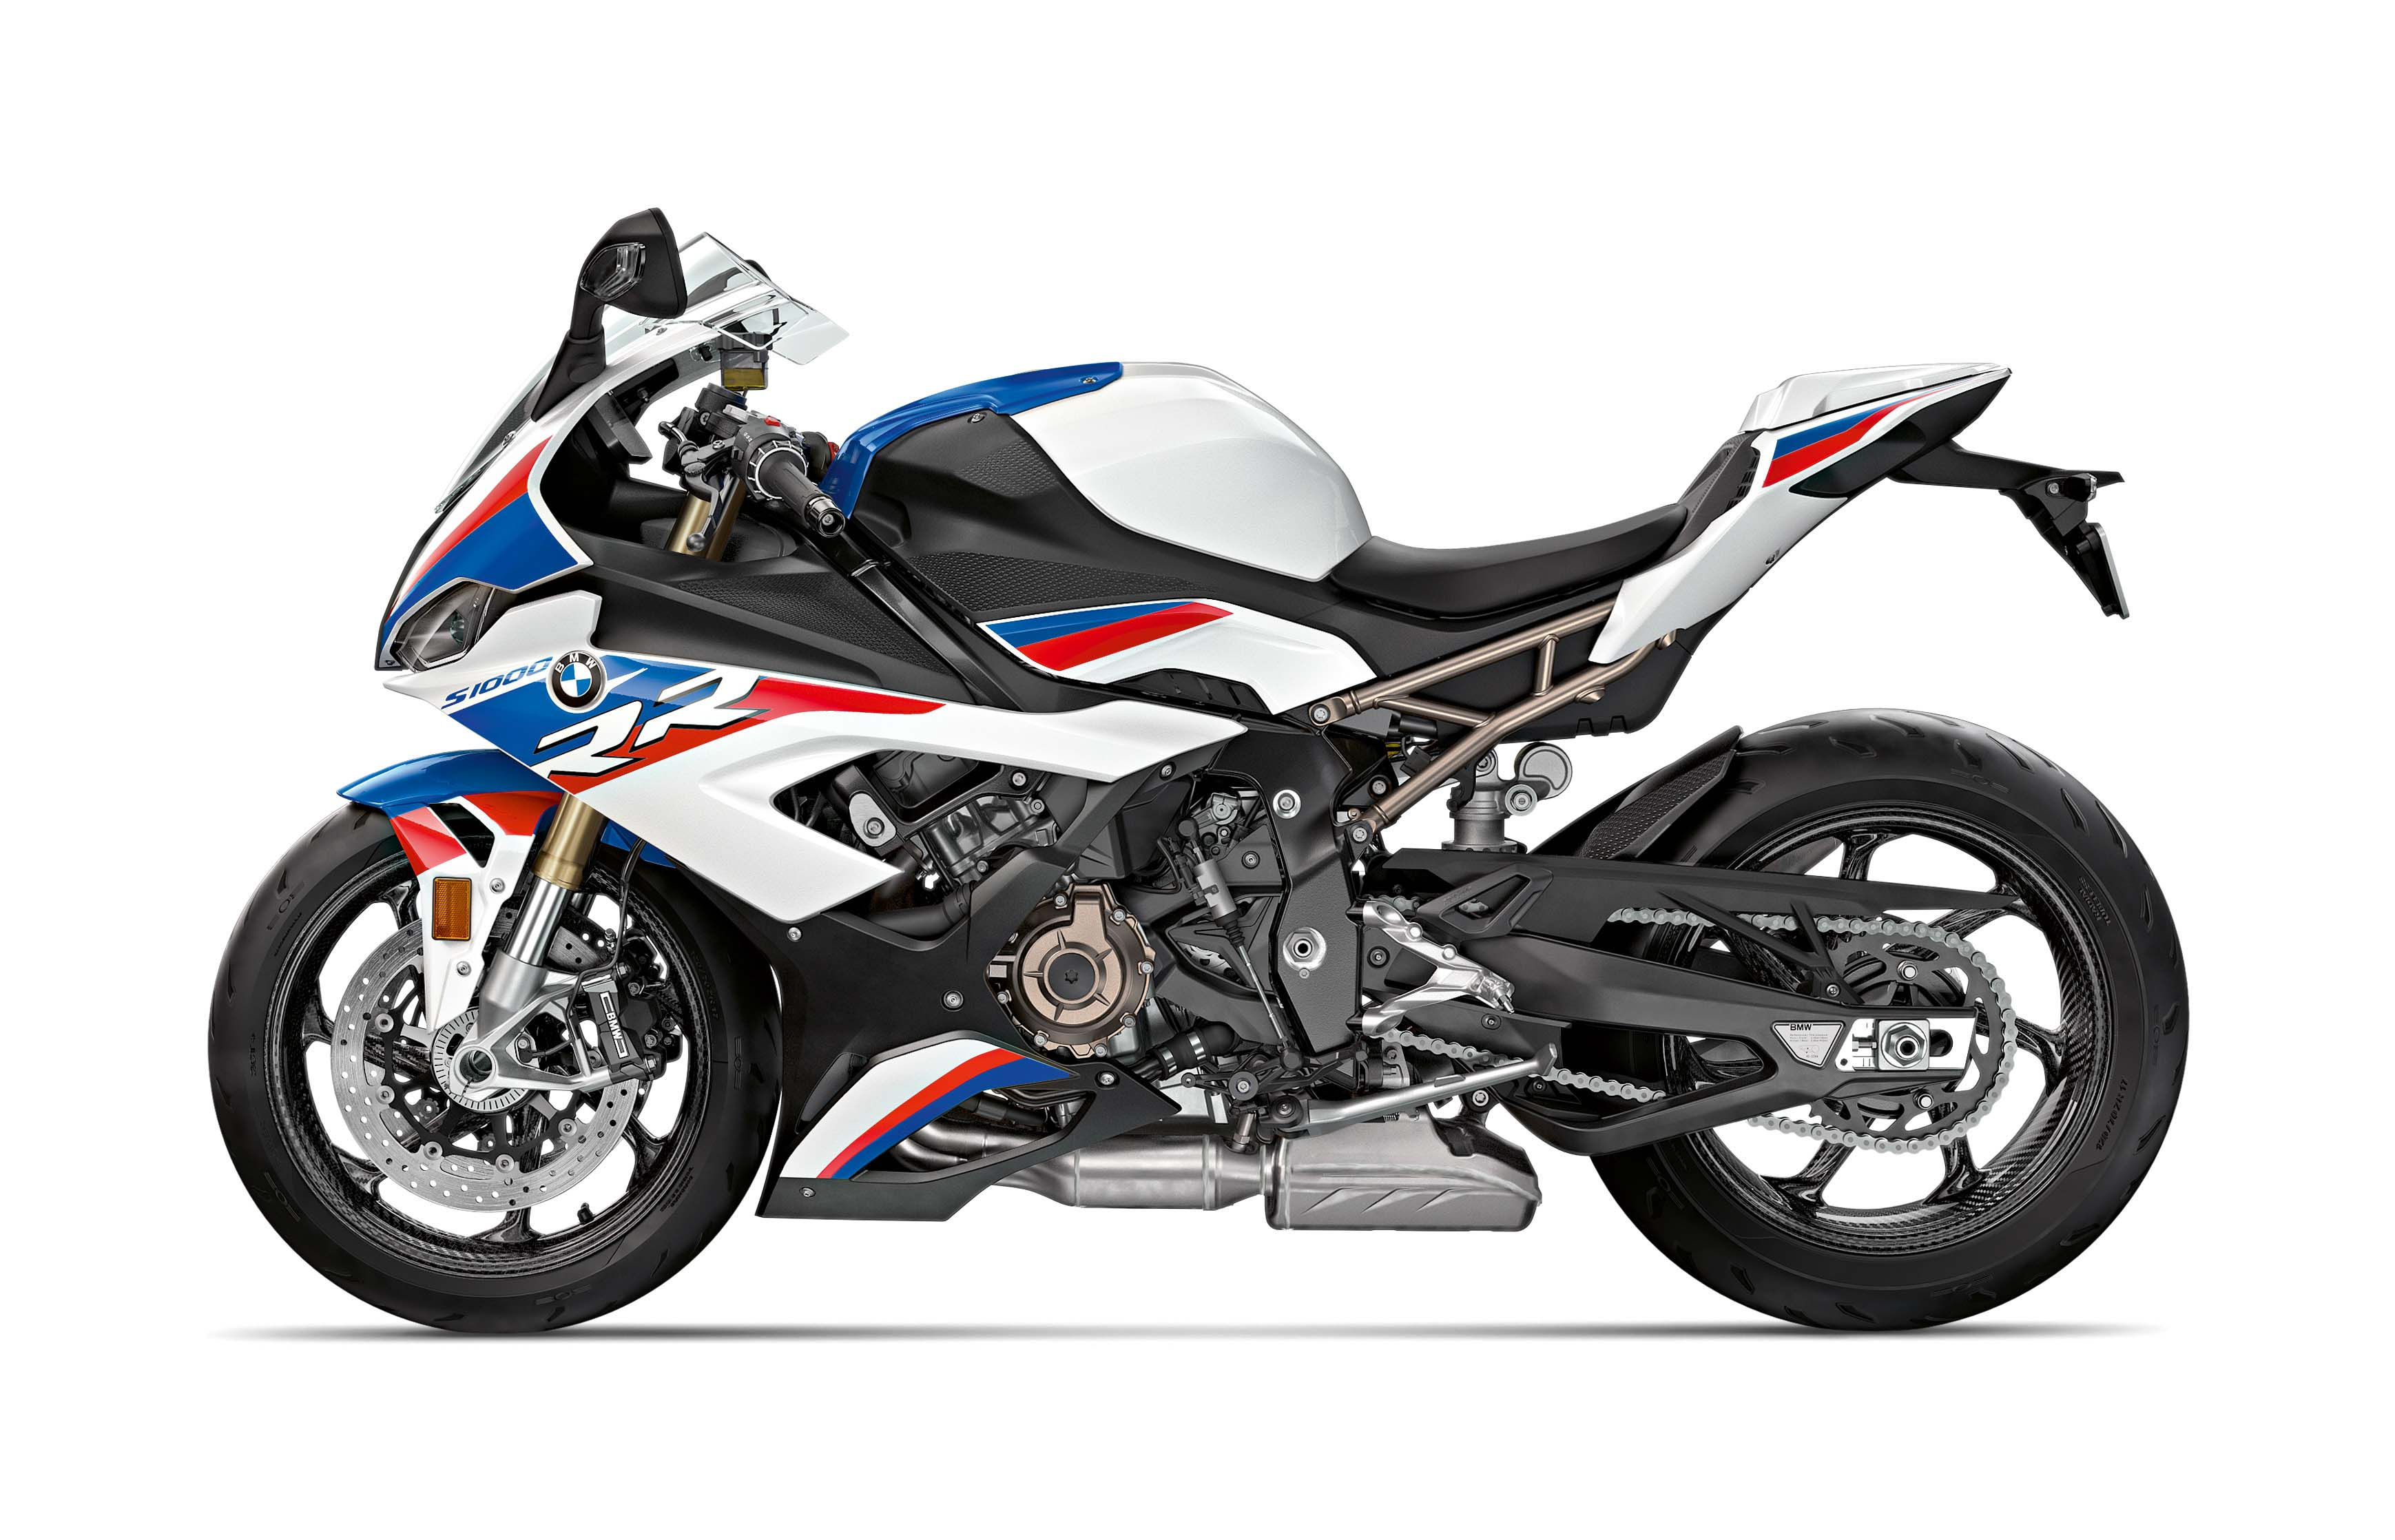 BMW S1000RR 2019 Pro ABS in SHOWROOM condition! With only